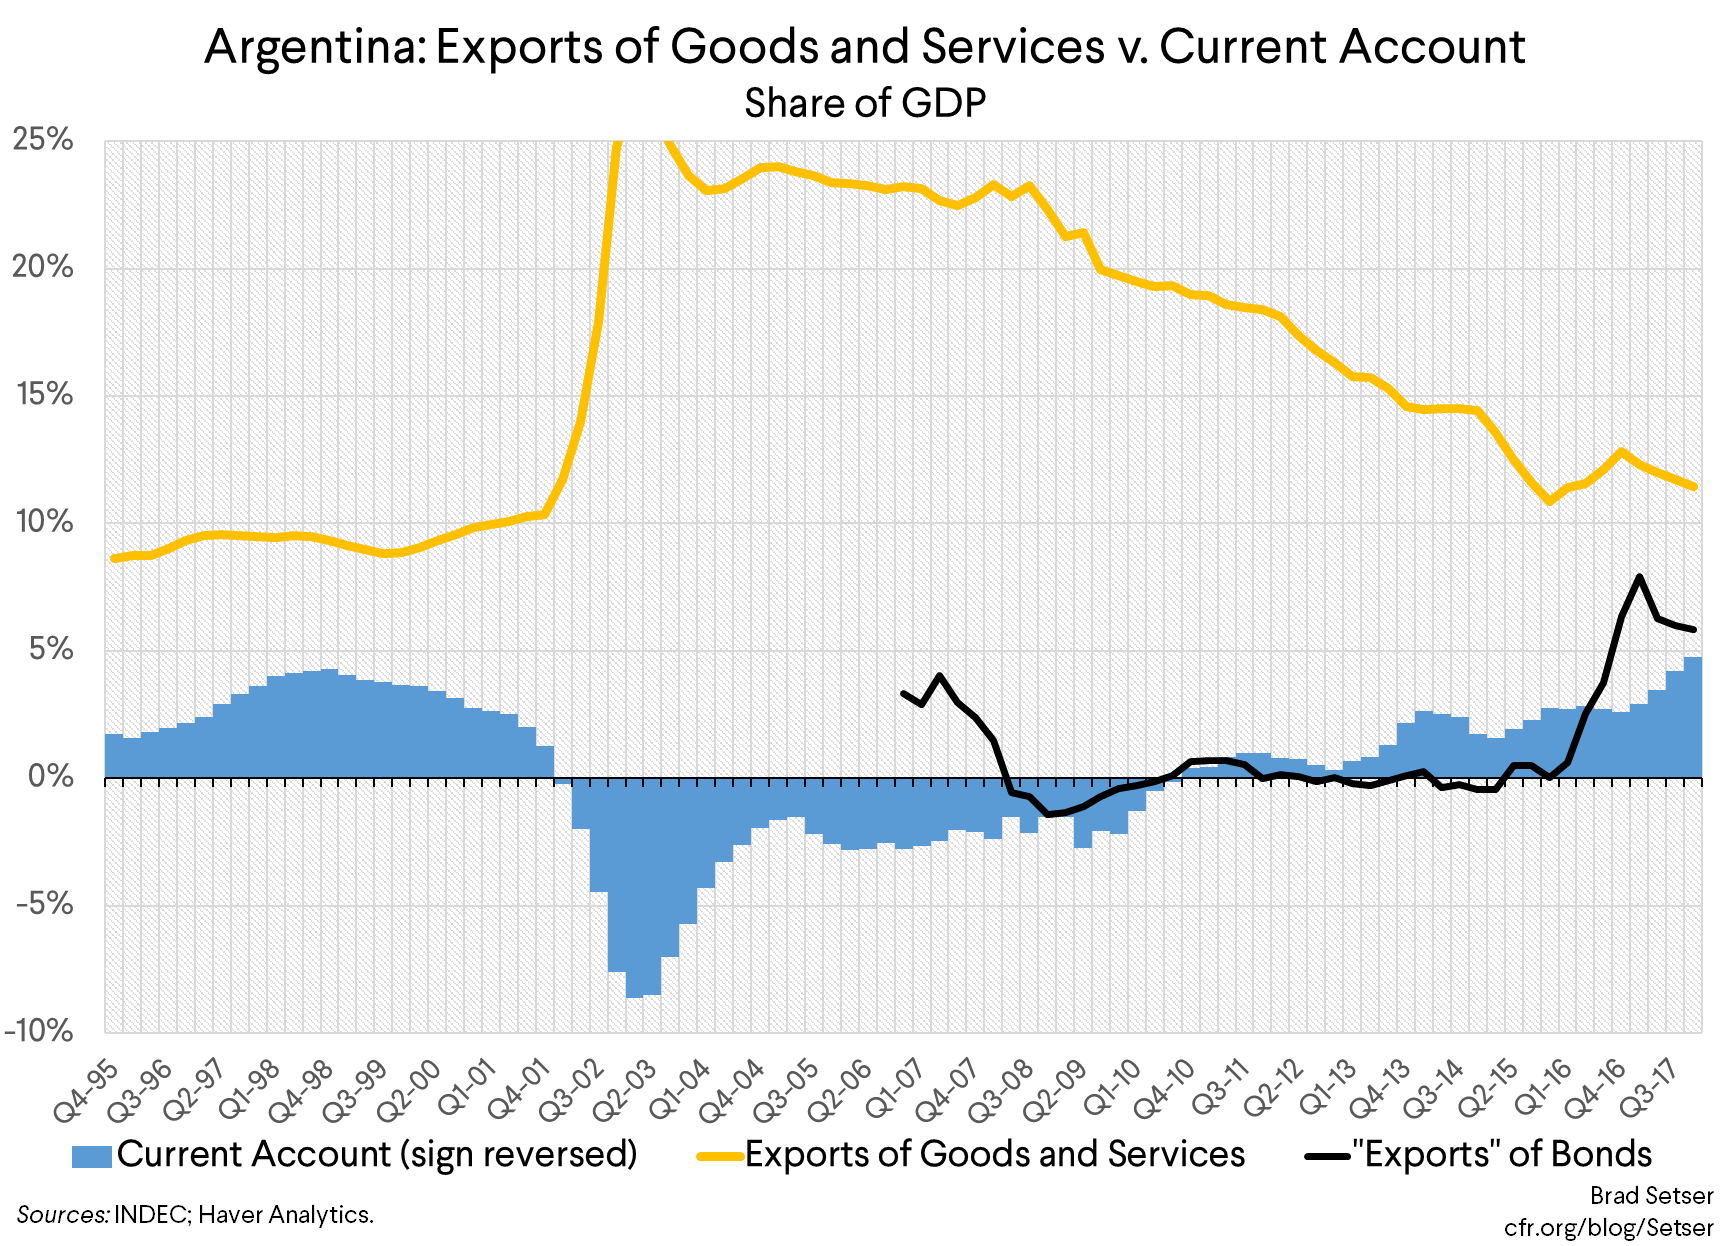 Argentina: Sustainable, Yes, with Adjustment.  But Sustainable with A High Probability?